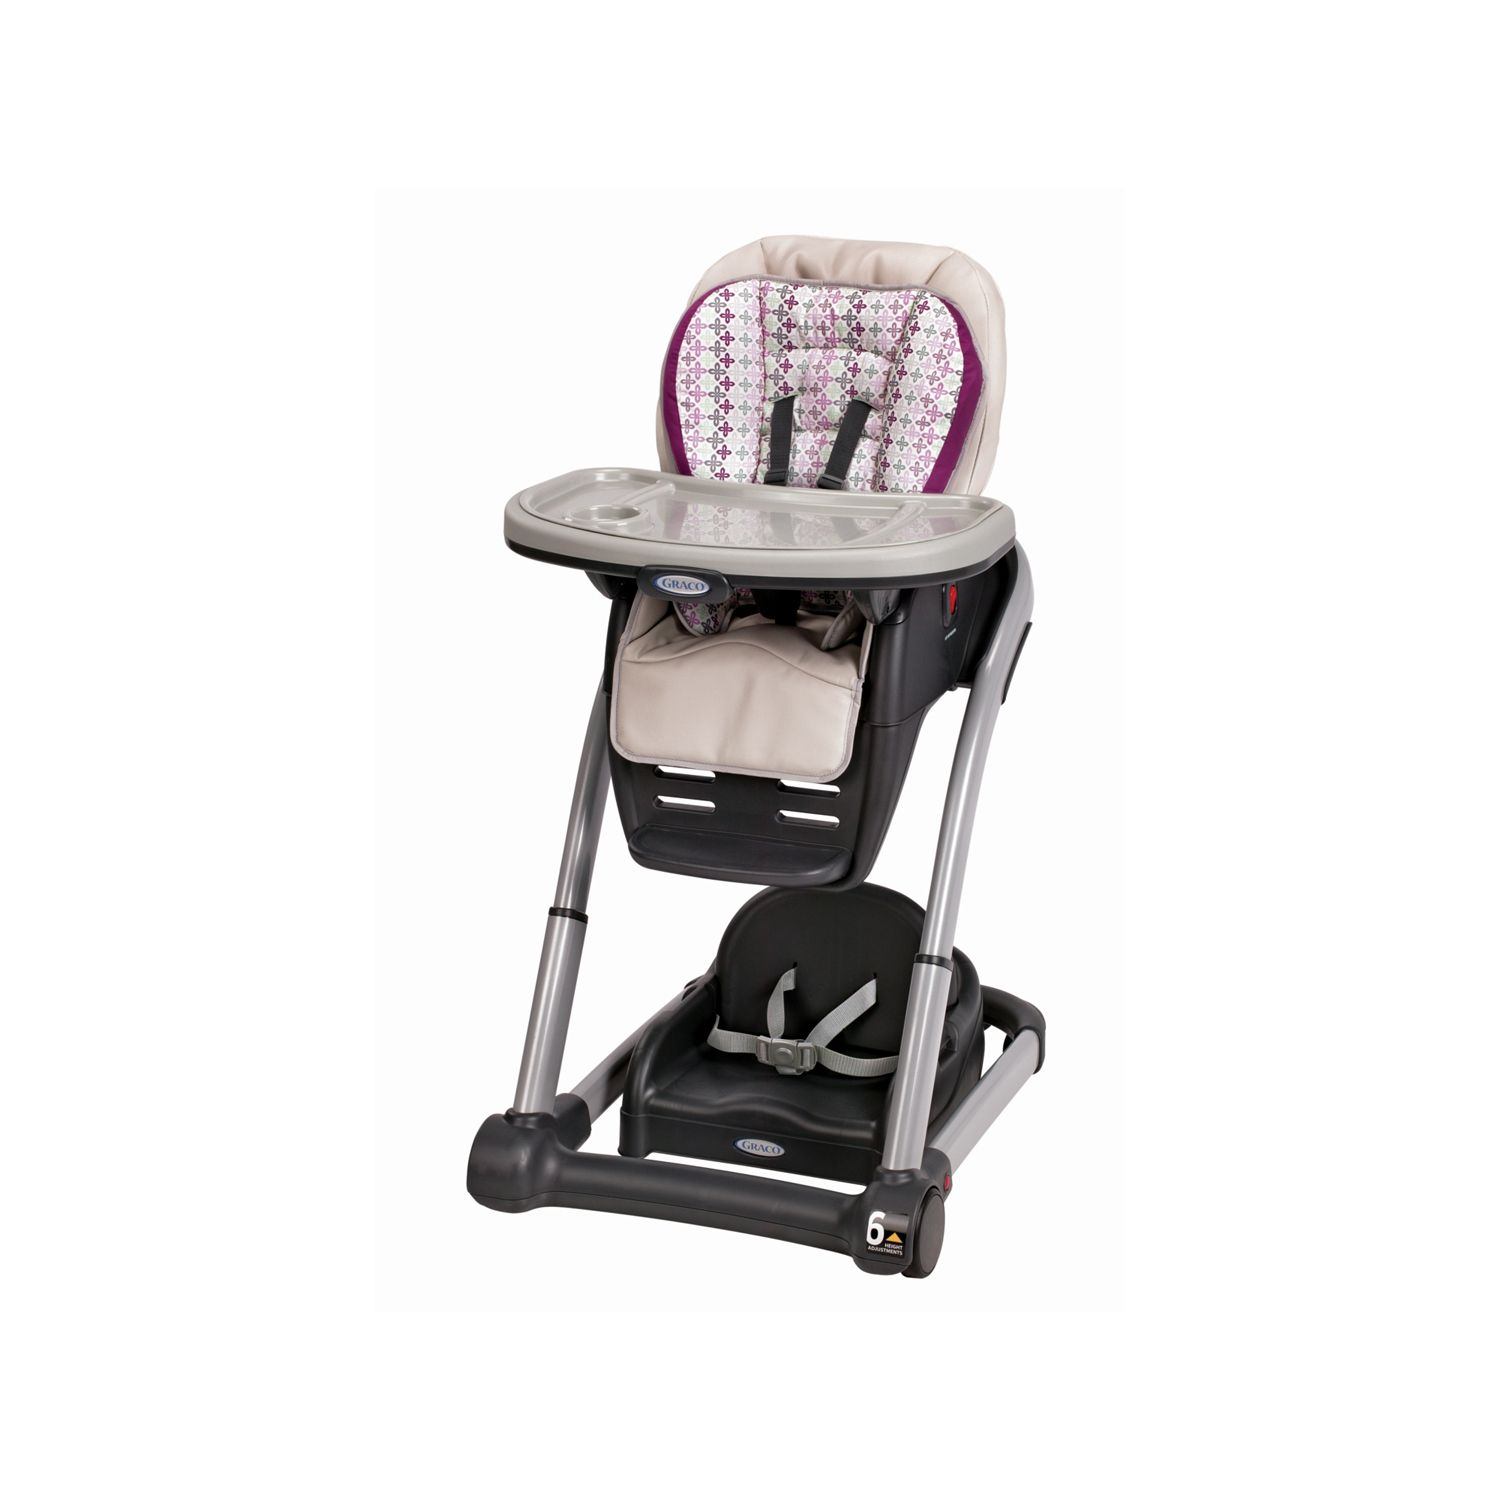 Graco Blossom 4 In 1 Seating System High Chair